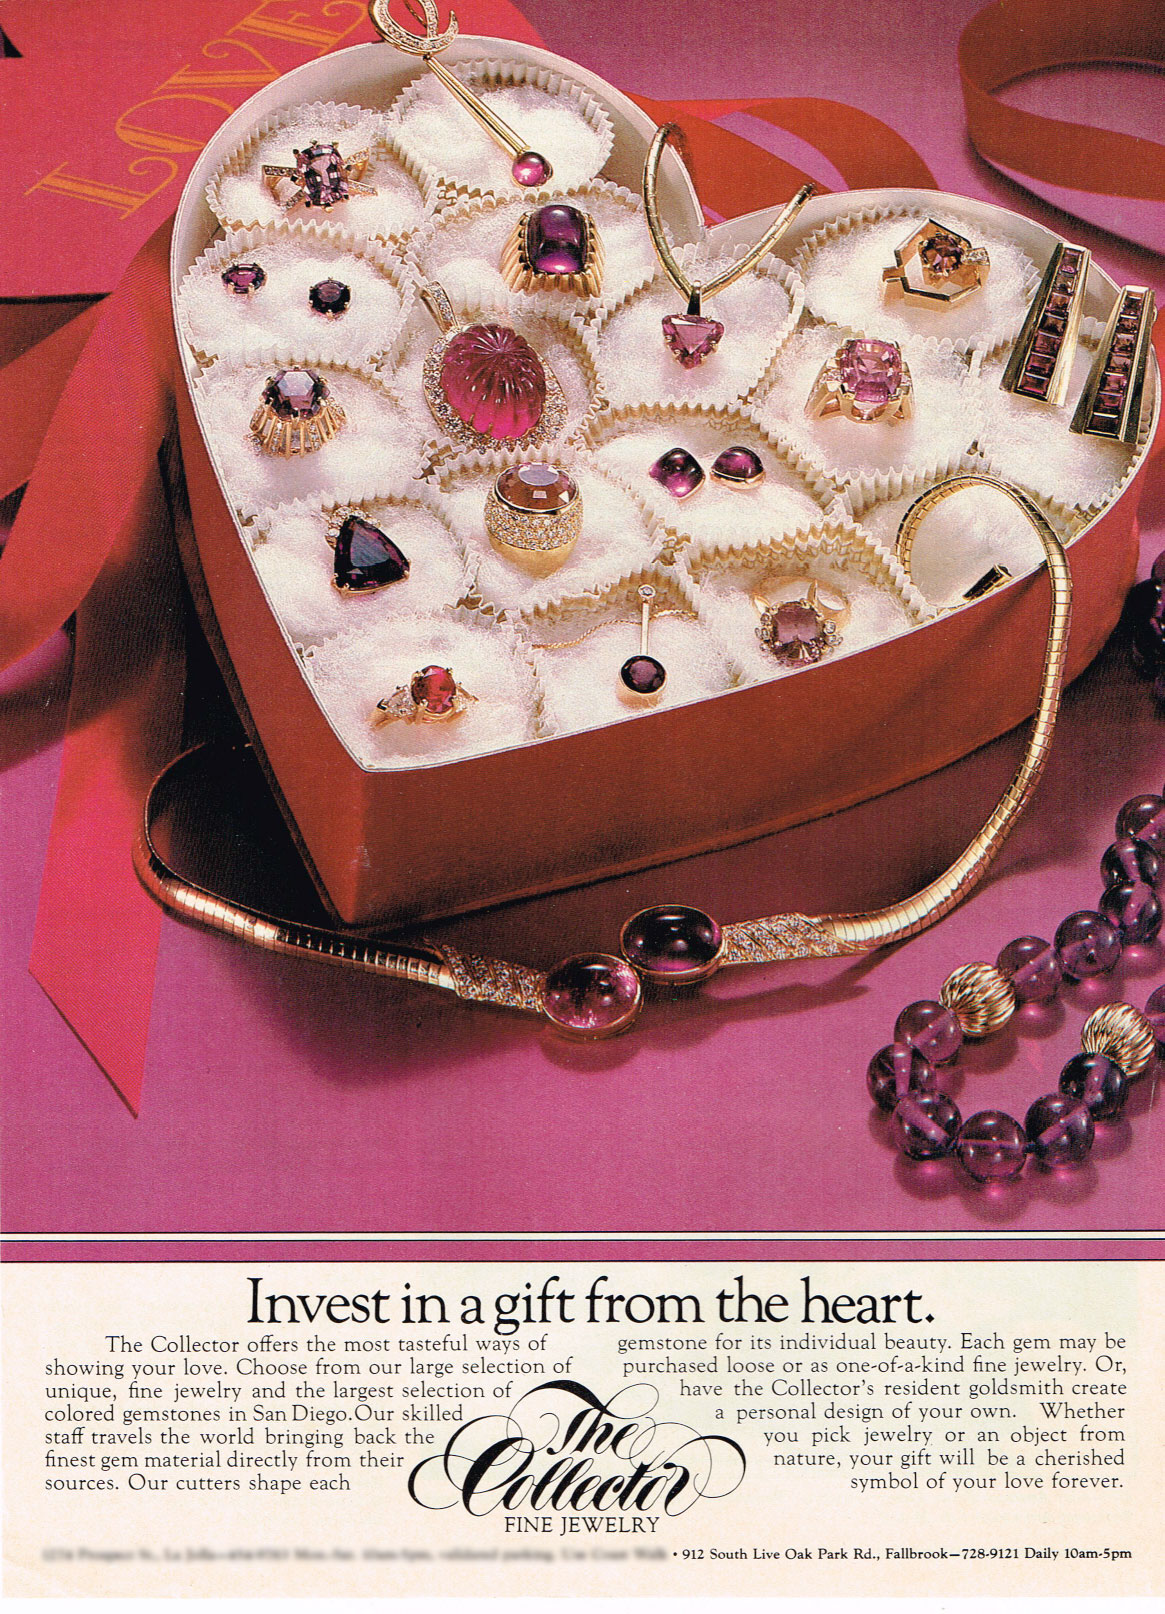 Vintage Valentine.  This ad, from the archives of Pala International's sibling enterprise, reminds us of how much we treasure the clients who have supported us over the decades. Thank you!